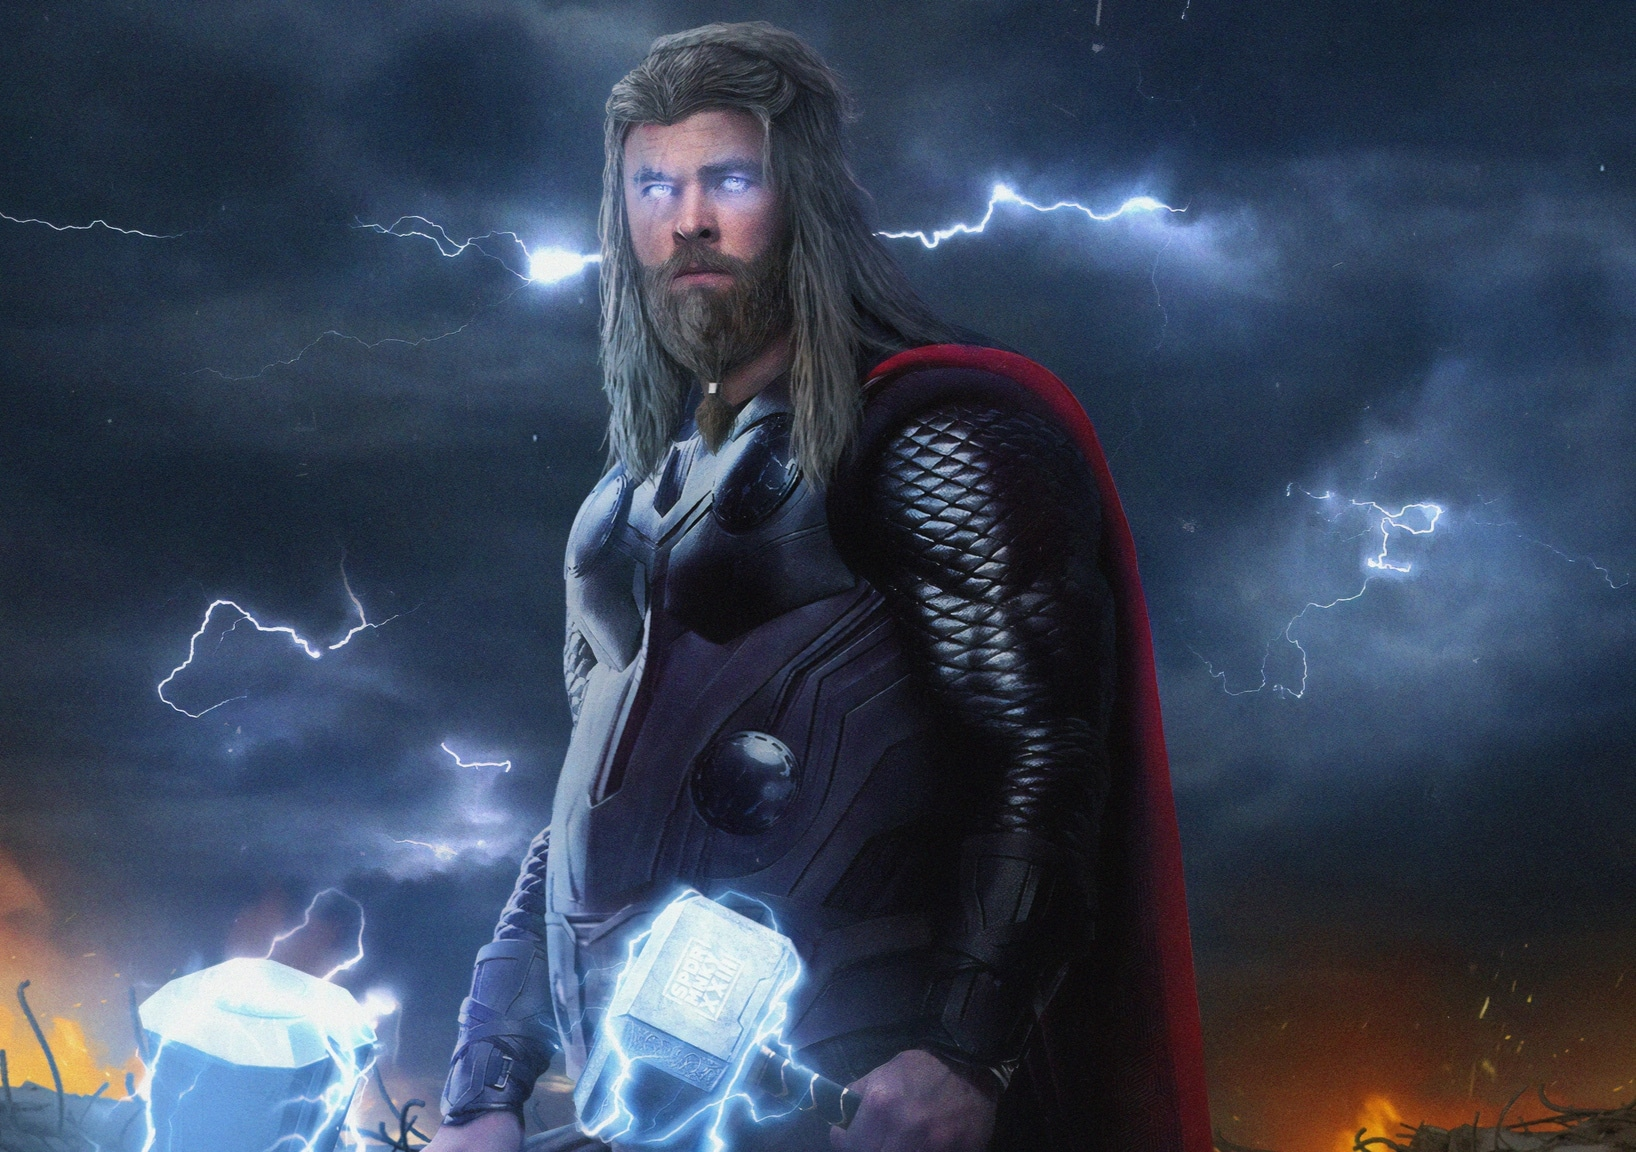 Fat Thor in Endgame